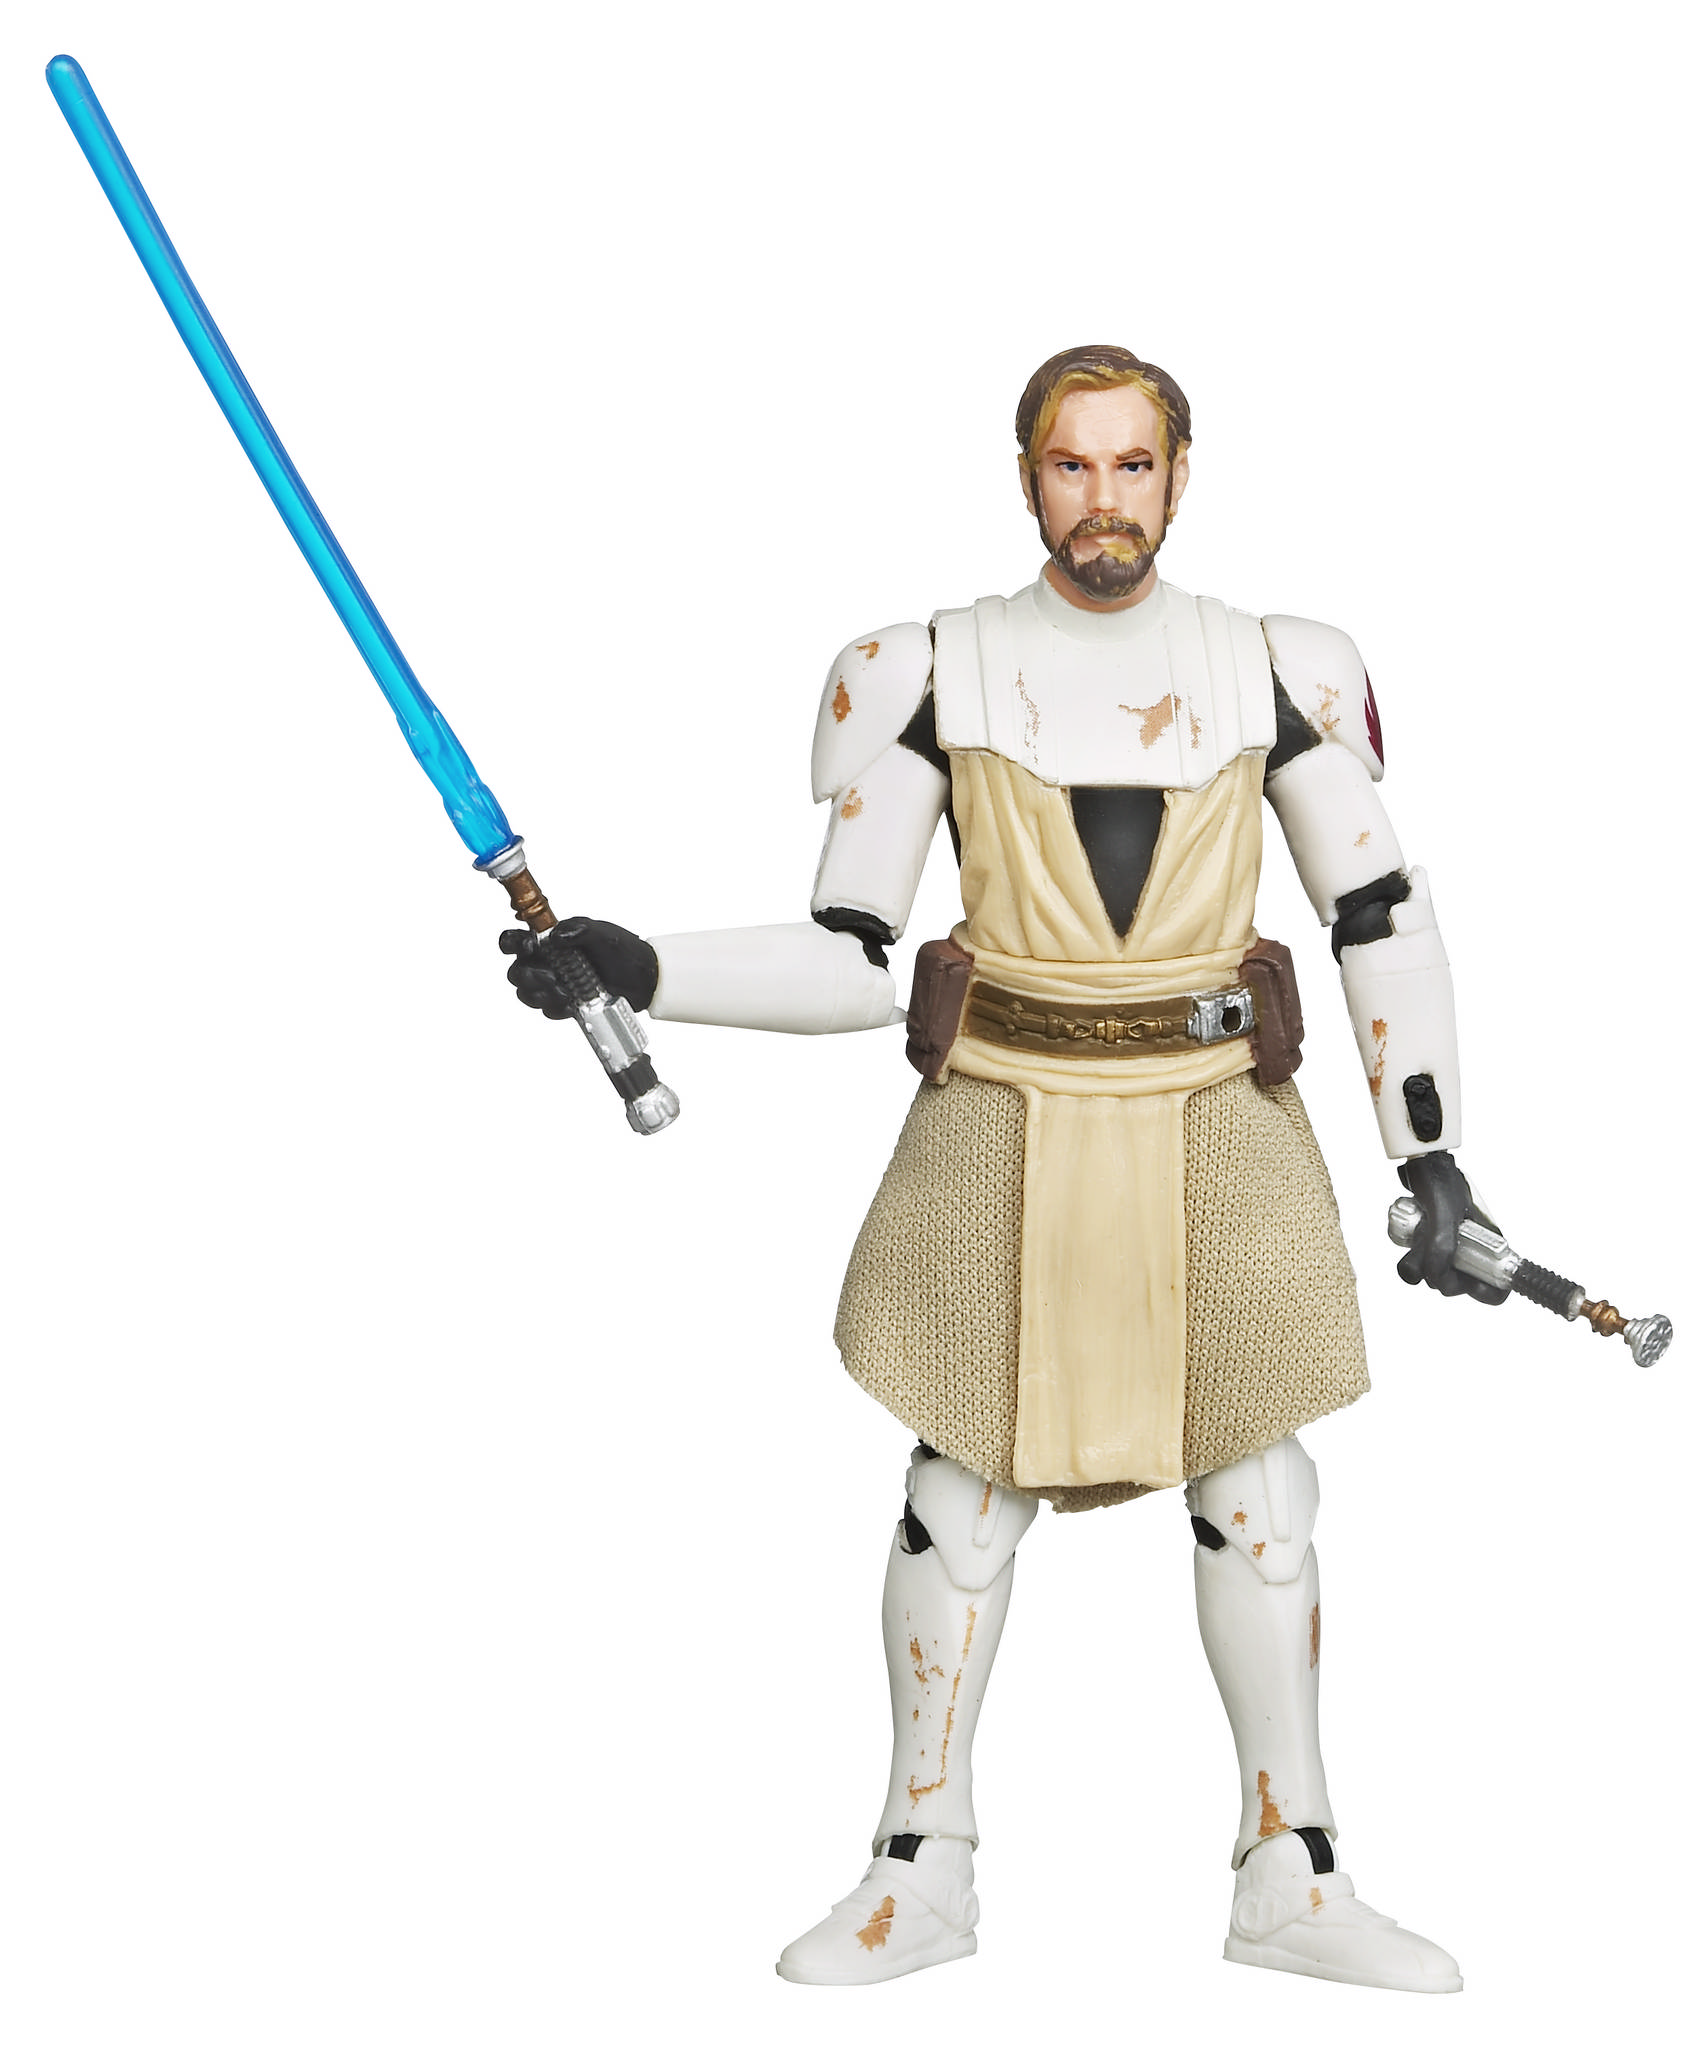 STAR WARS THE VINTAGE COLLECTION 3.75 INCH OBI WAN KENOBI Figure